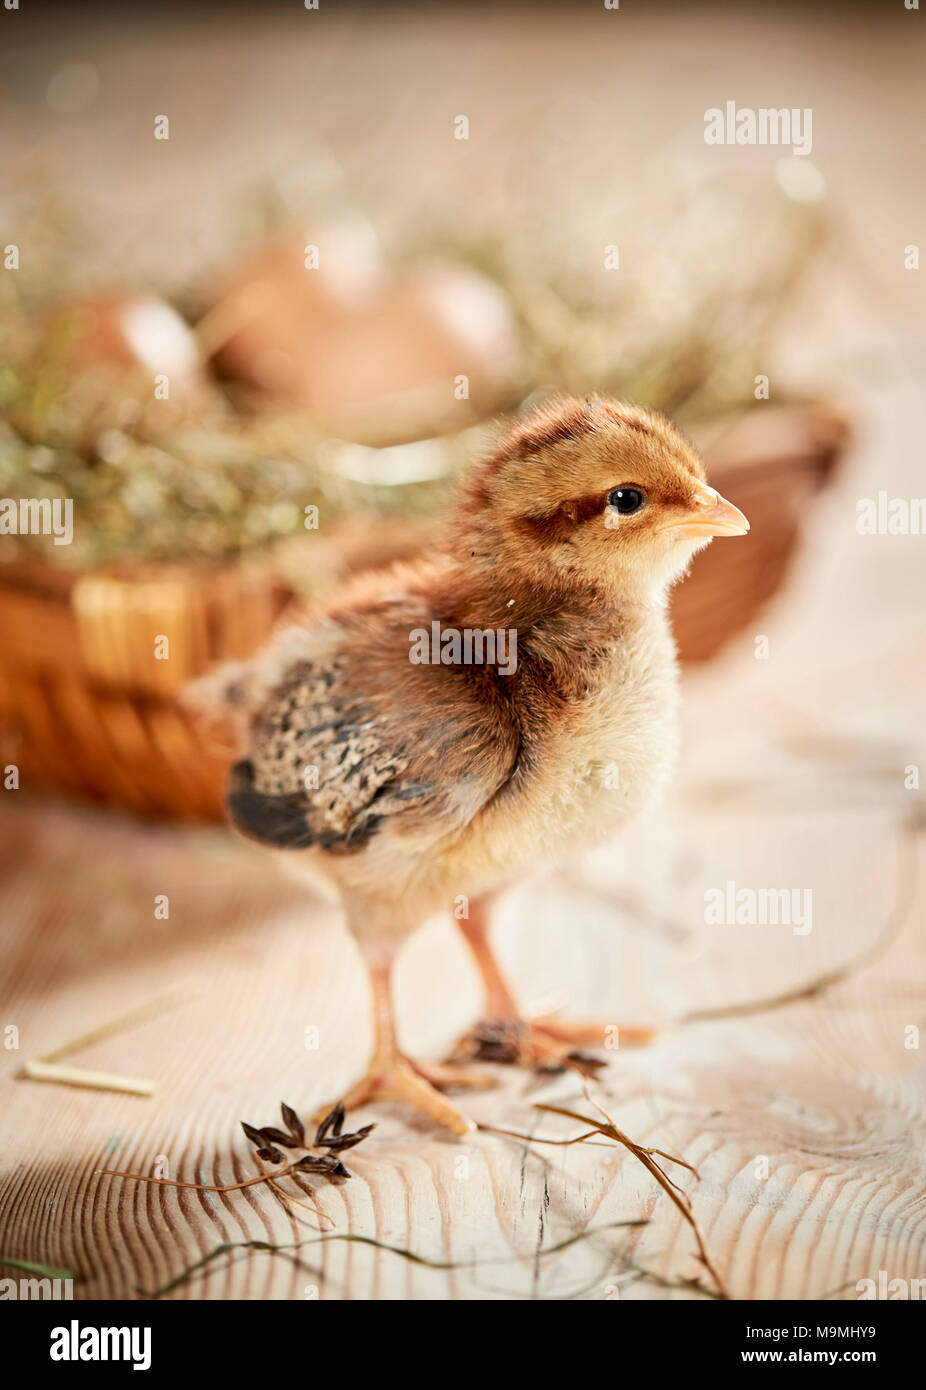 Welsummer Chicken. Chicken standing on wood, in front of nest with eggs. Germany Stock Photo